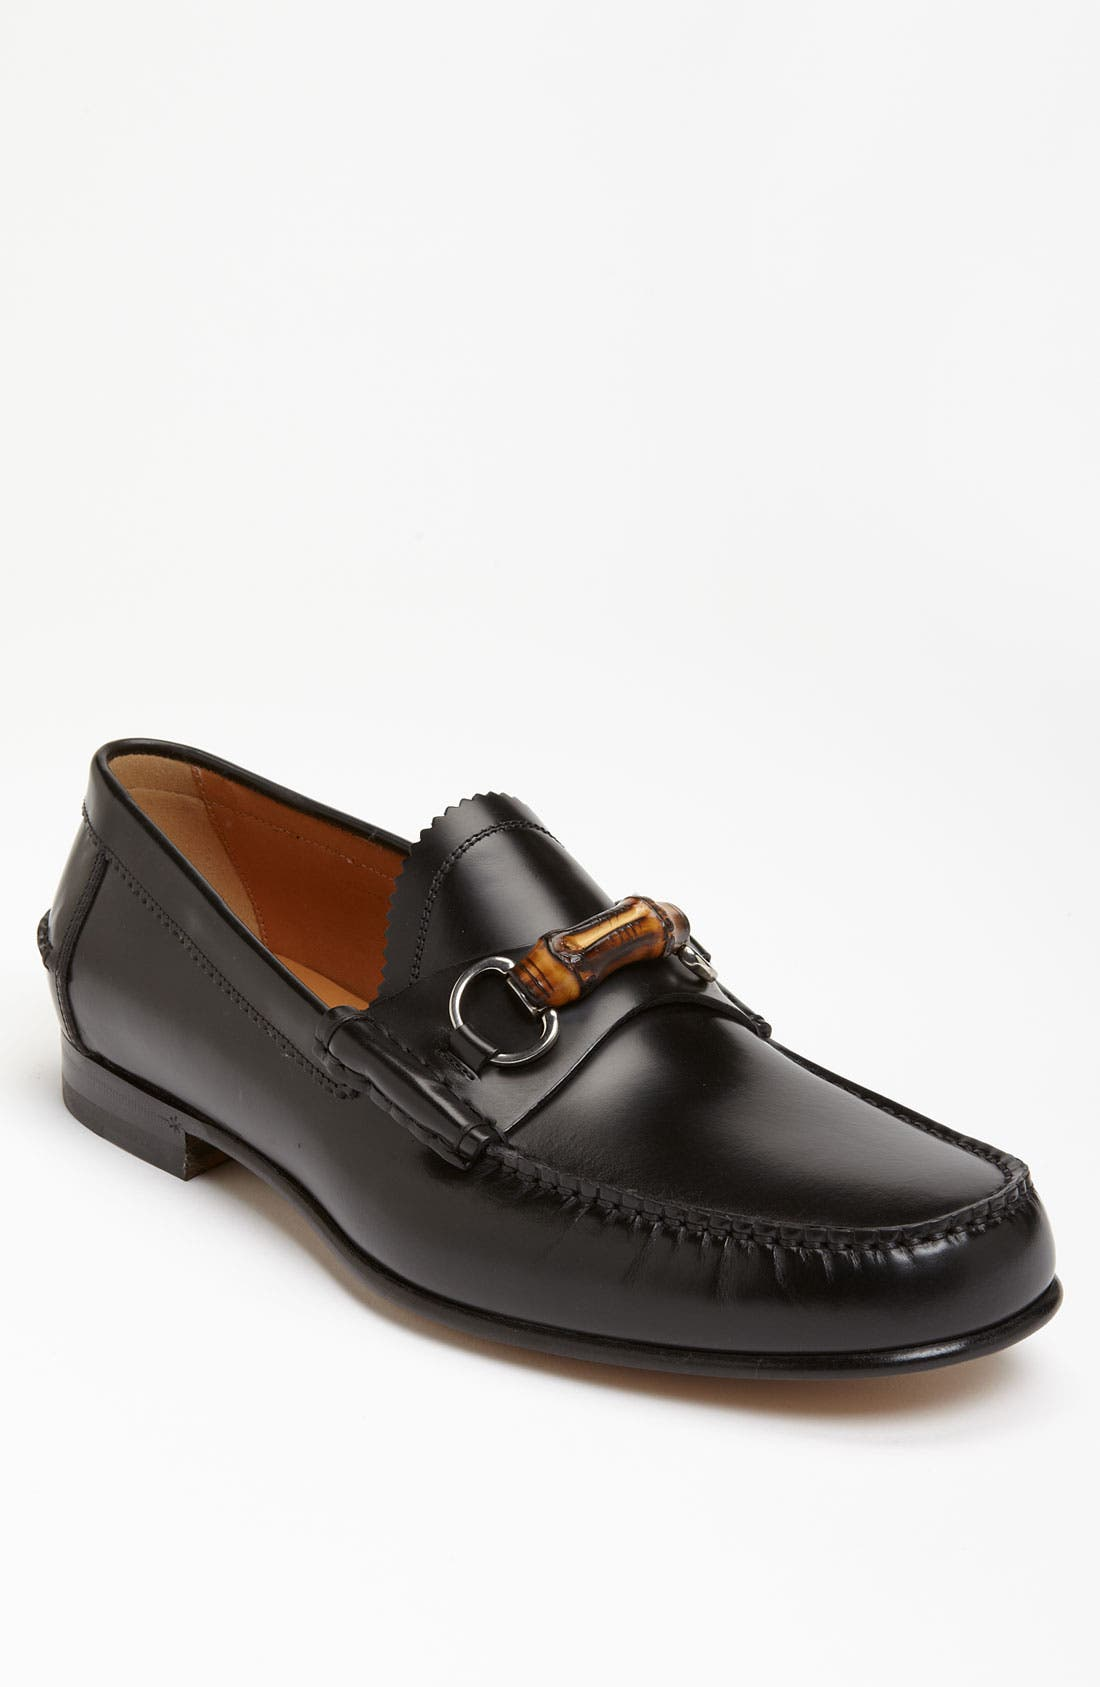 Alternate Image 1 Selected - Gucci 'Millet' Loafer